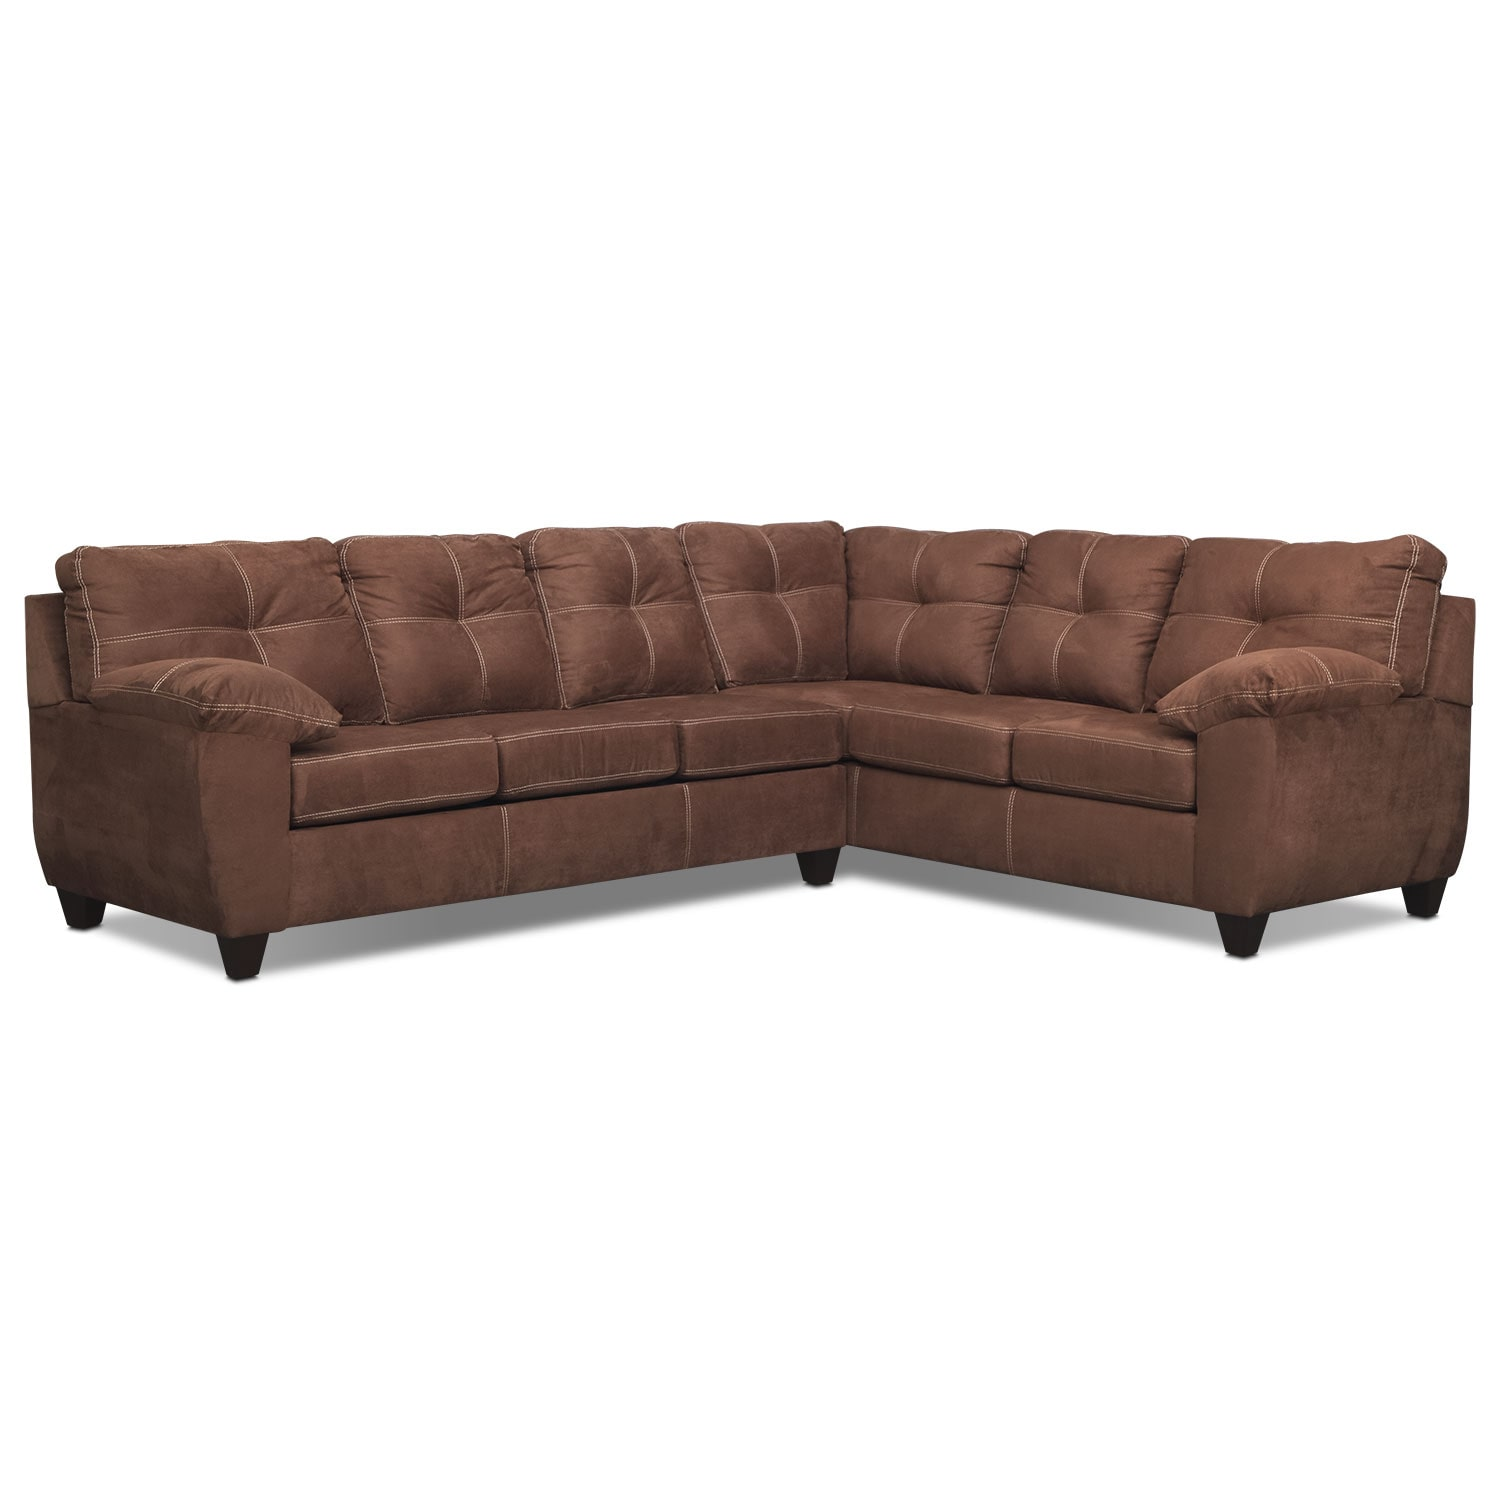 Living Room Furniture - Rialto 2-Piece Sectional with Left-Facing Innerspring Sleeper - Coffee